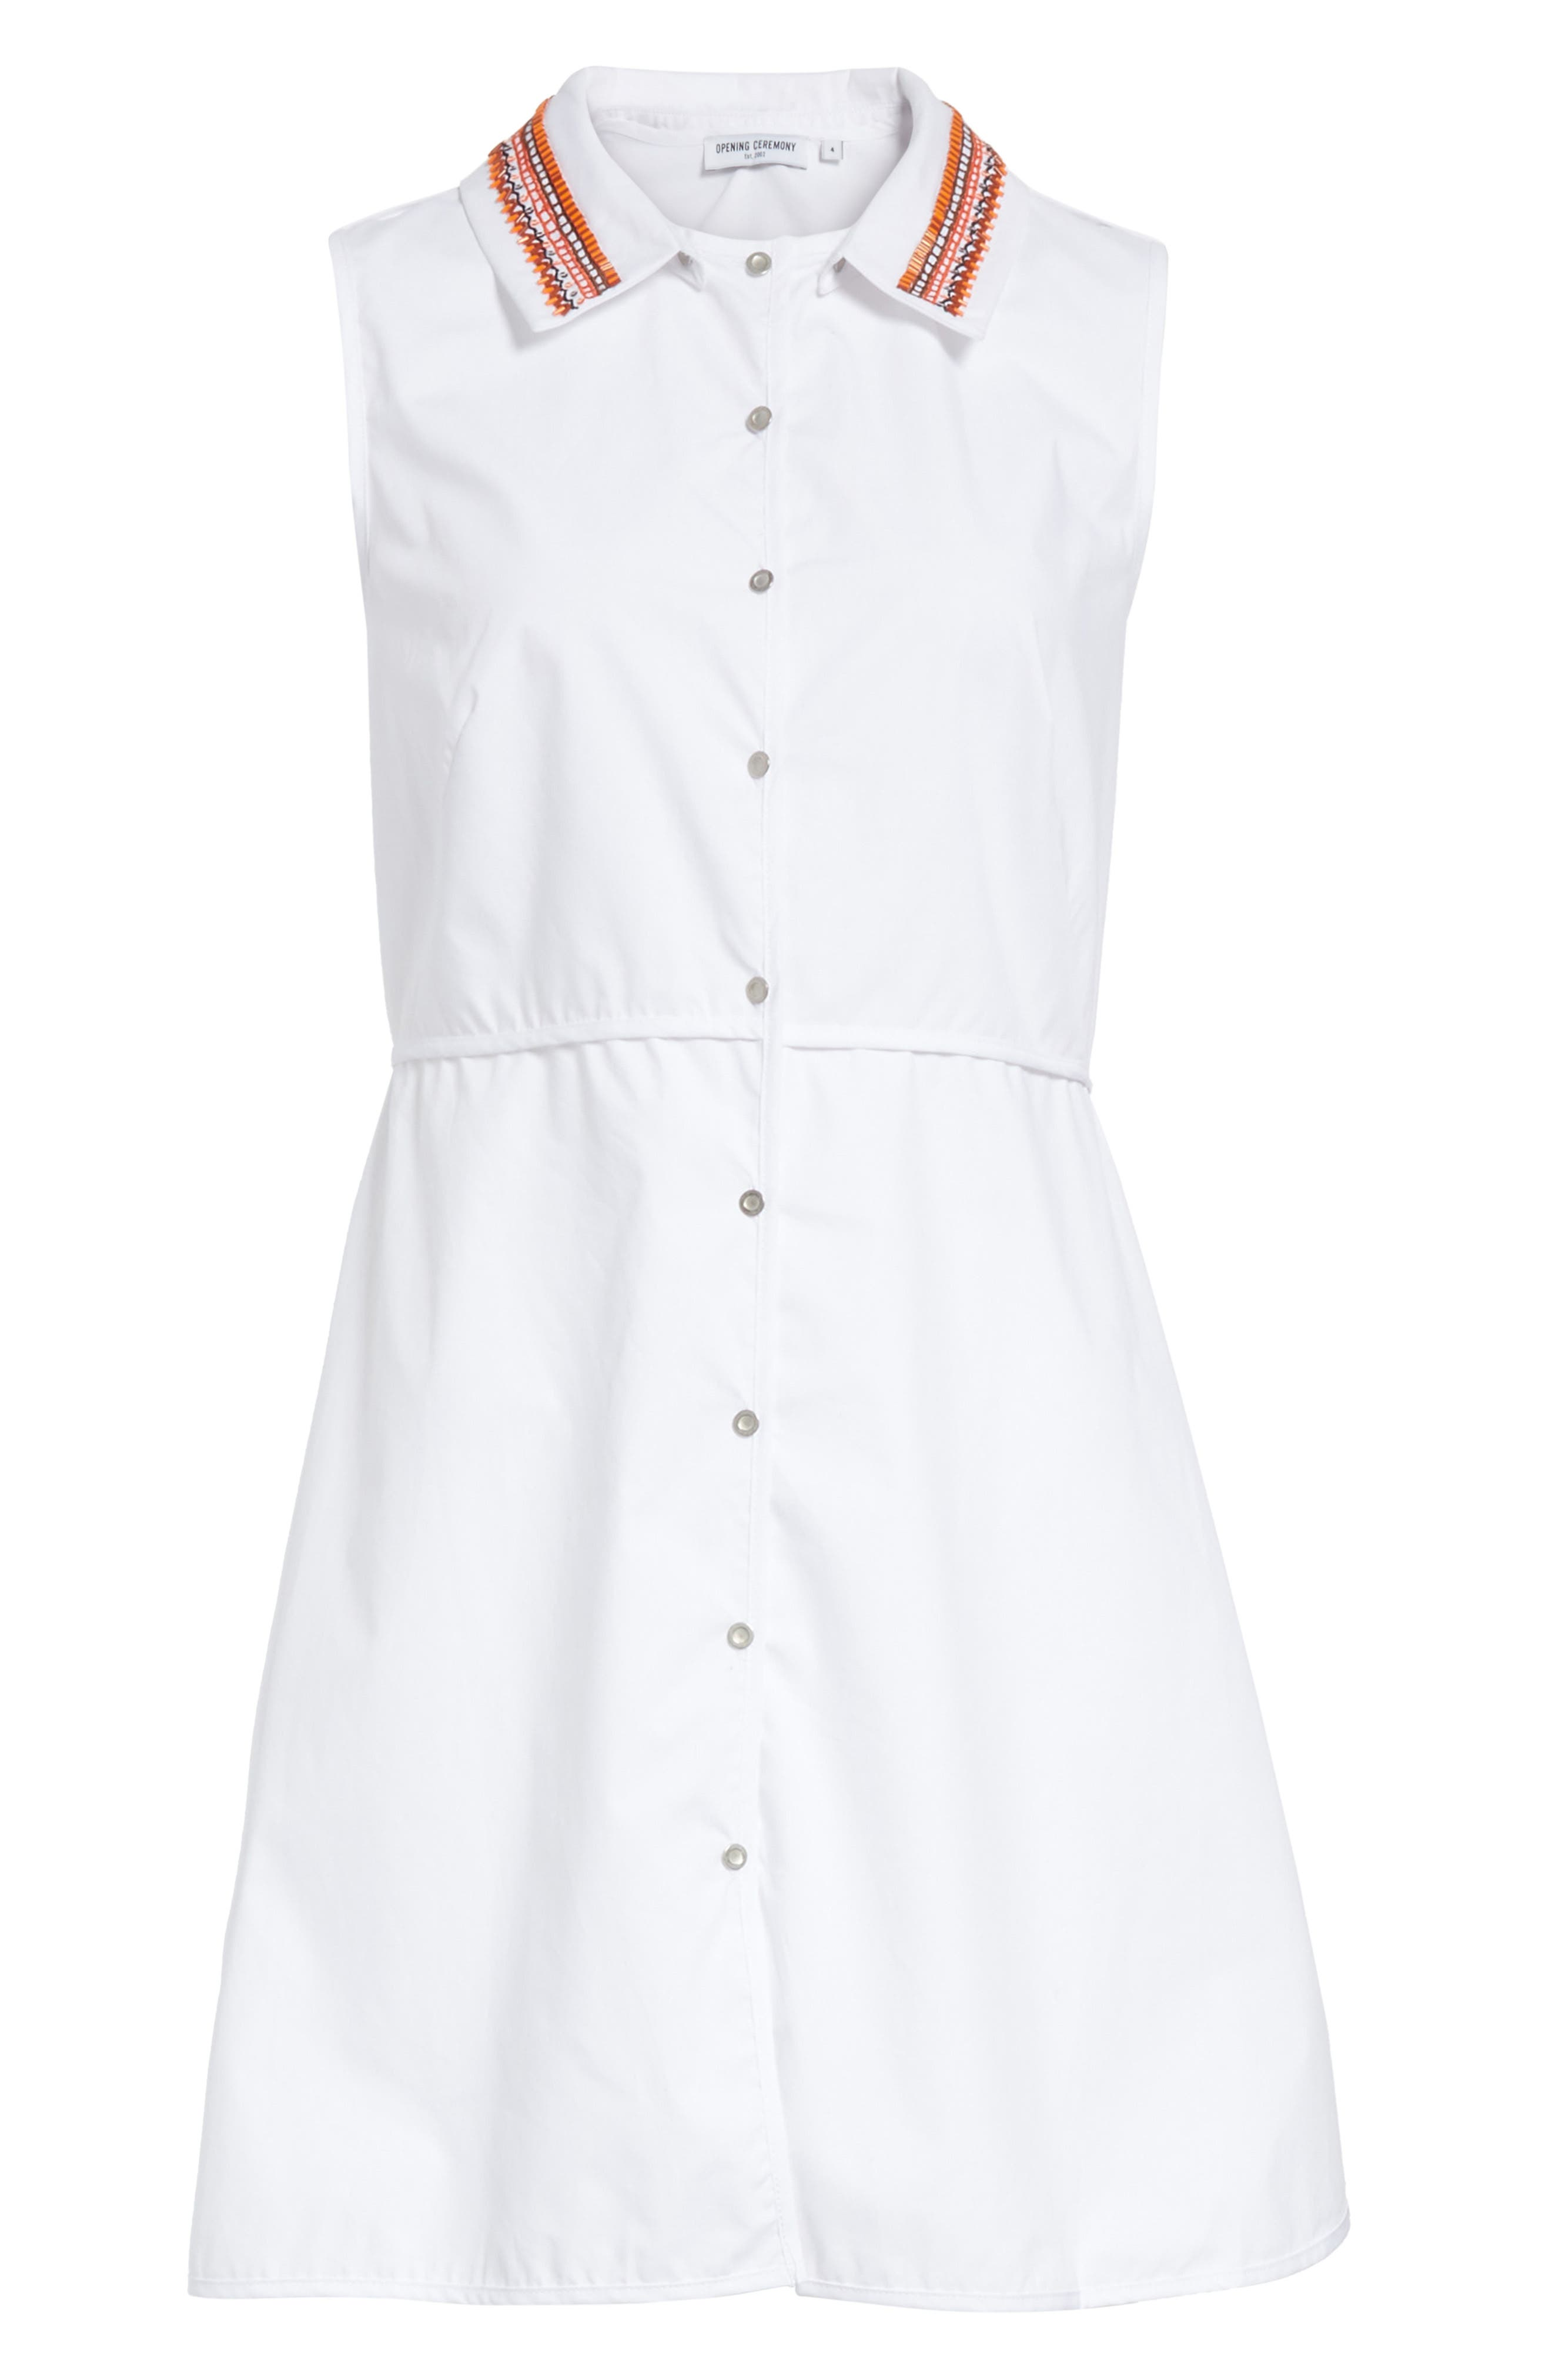 Transformer Poplin Dress with Detachable Embroidered Collar,                             Alternate thumbnail 6, color,                             White